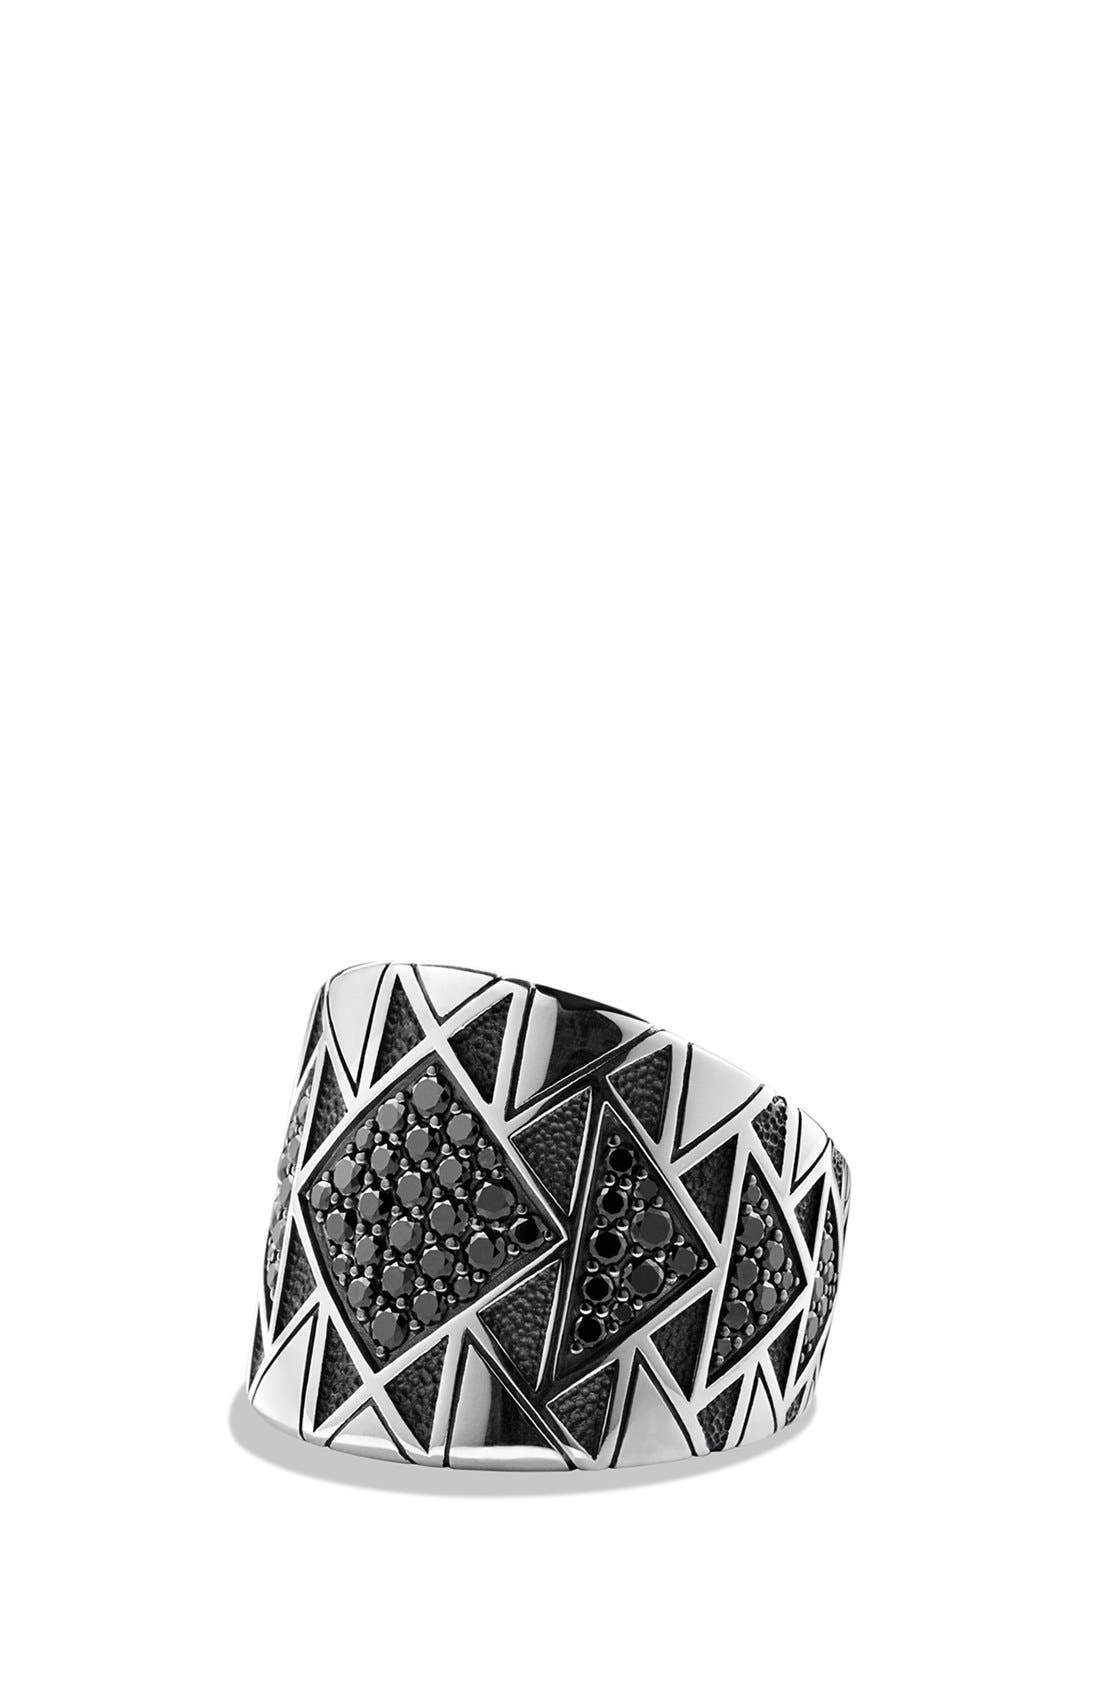 Southwest Signet Ring with Black Diamonds,                             Main thumbnail 1, color,                             Black Diamond